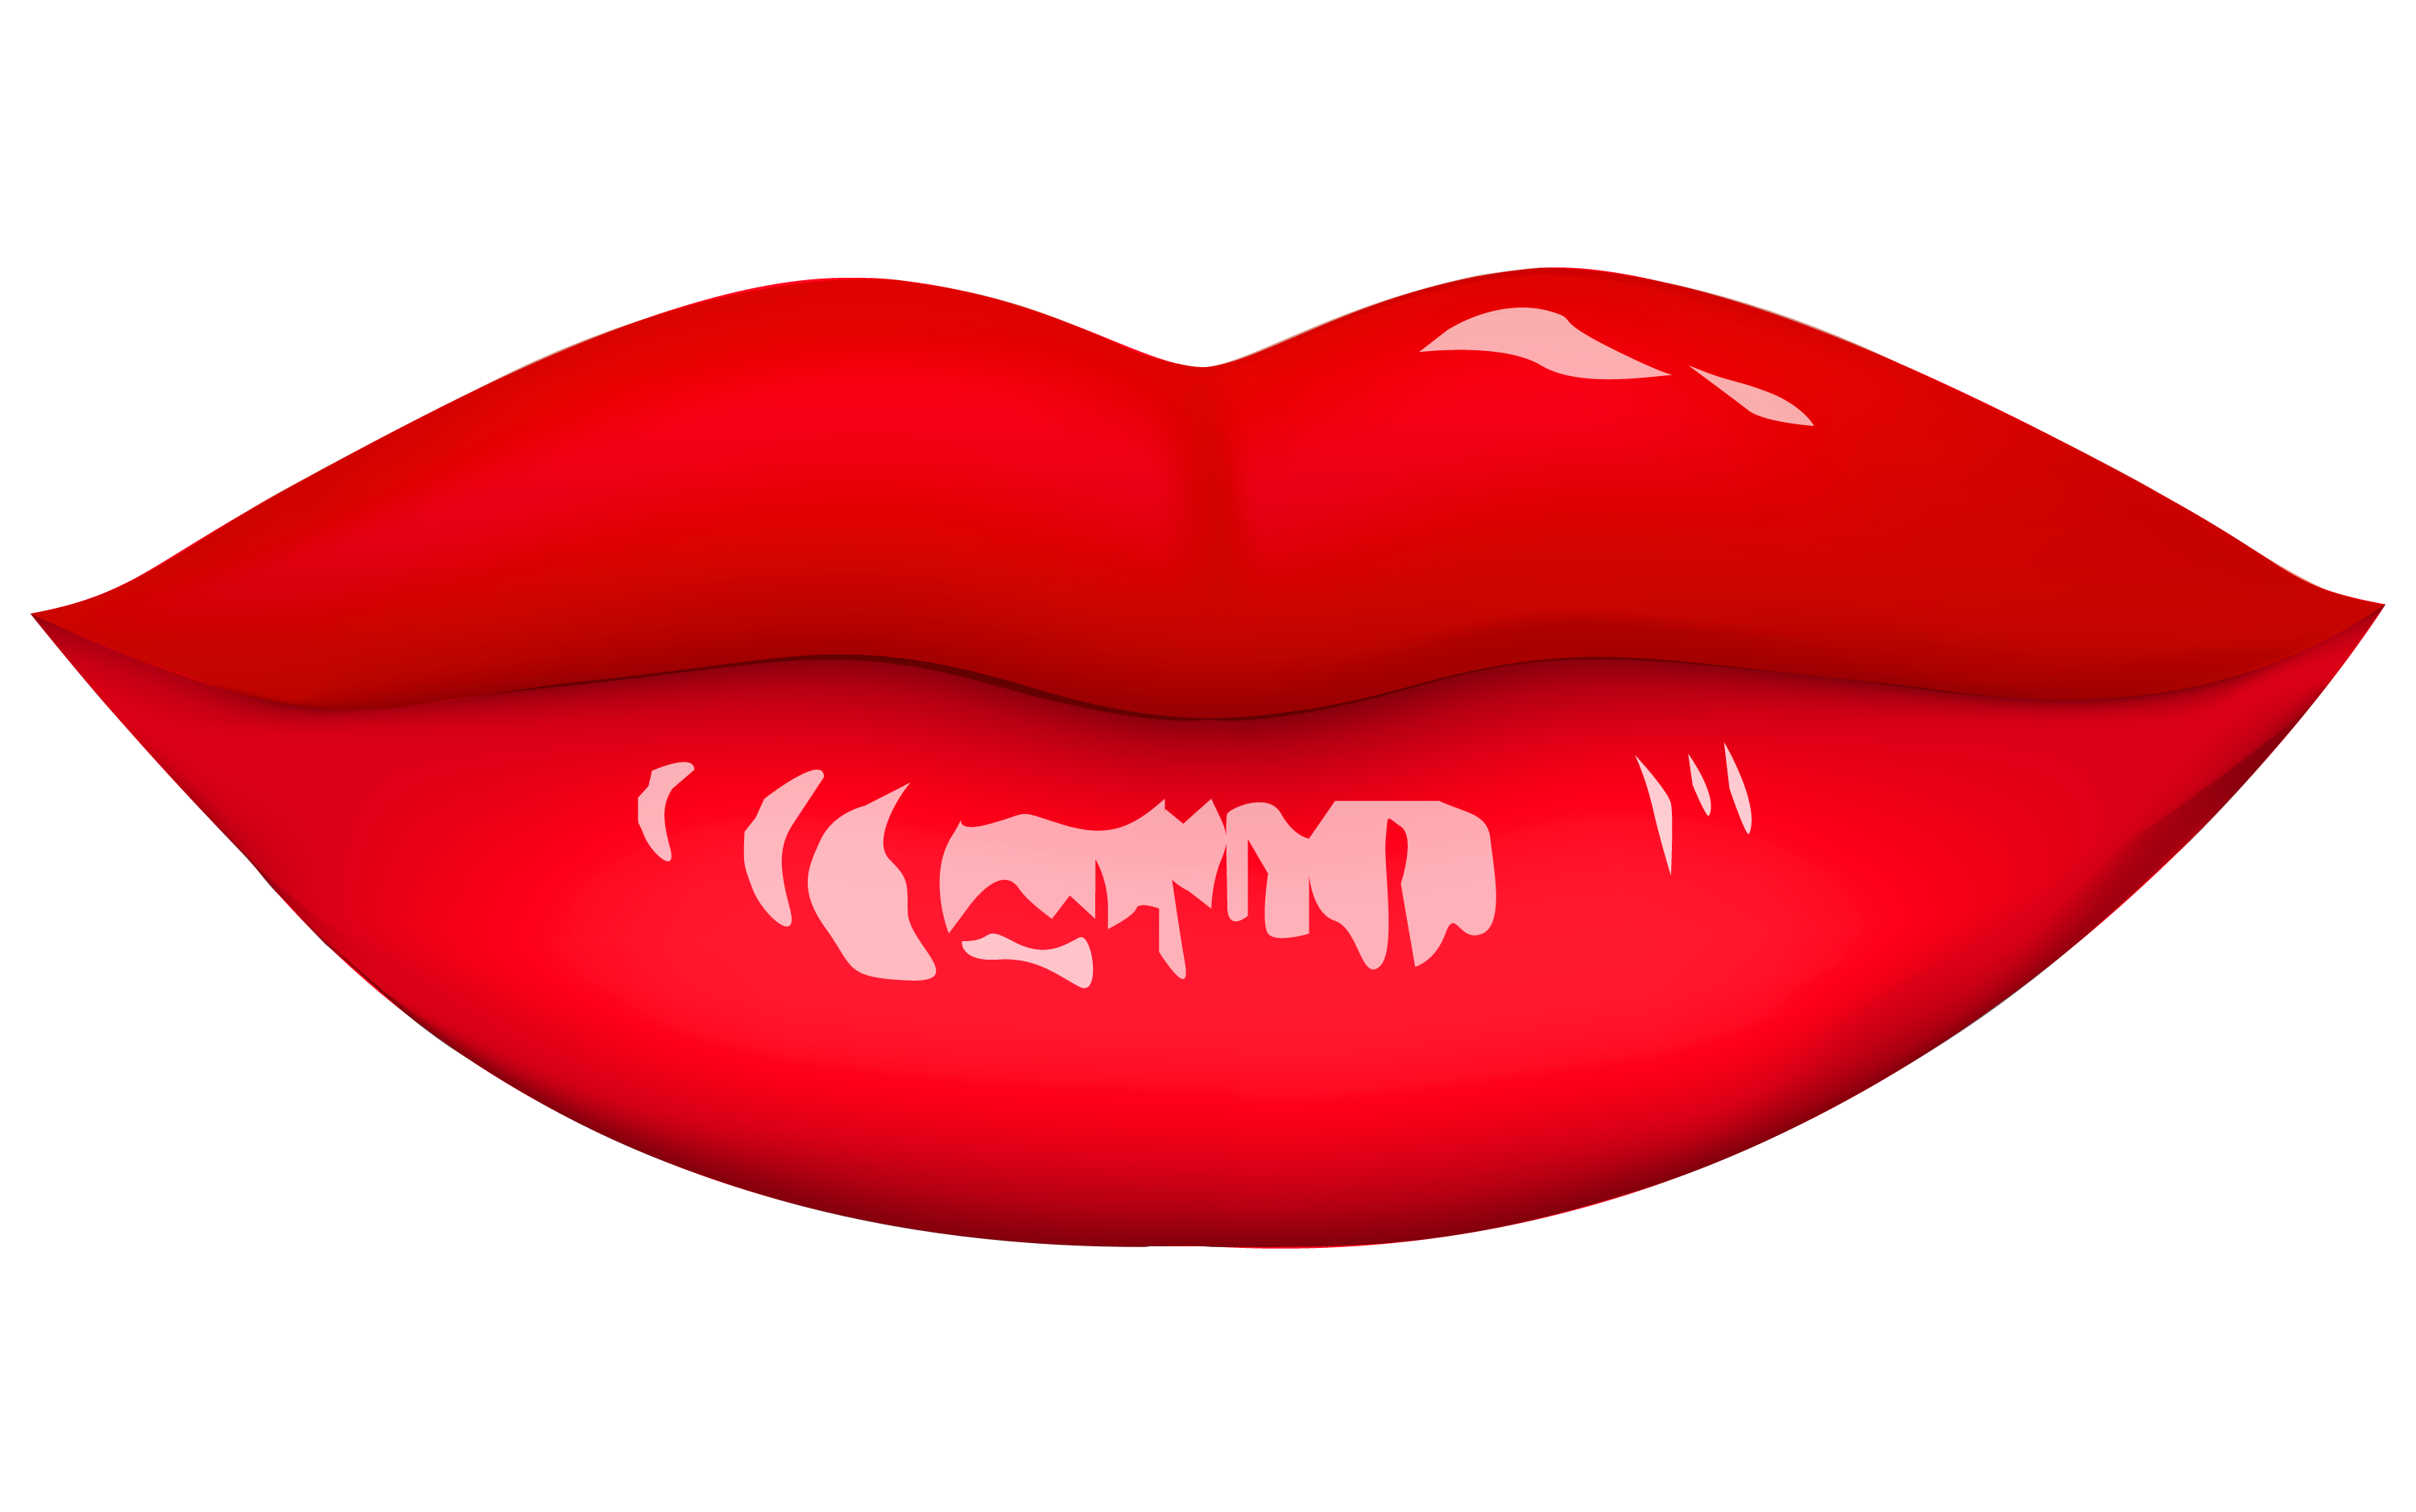 Kiss images pngpix lips. Drip lip png clipart royalty free library